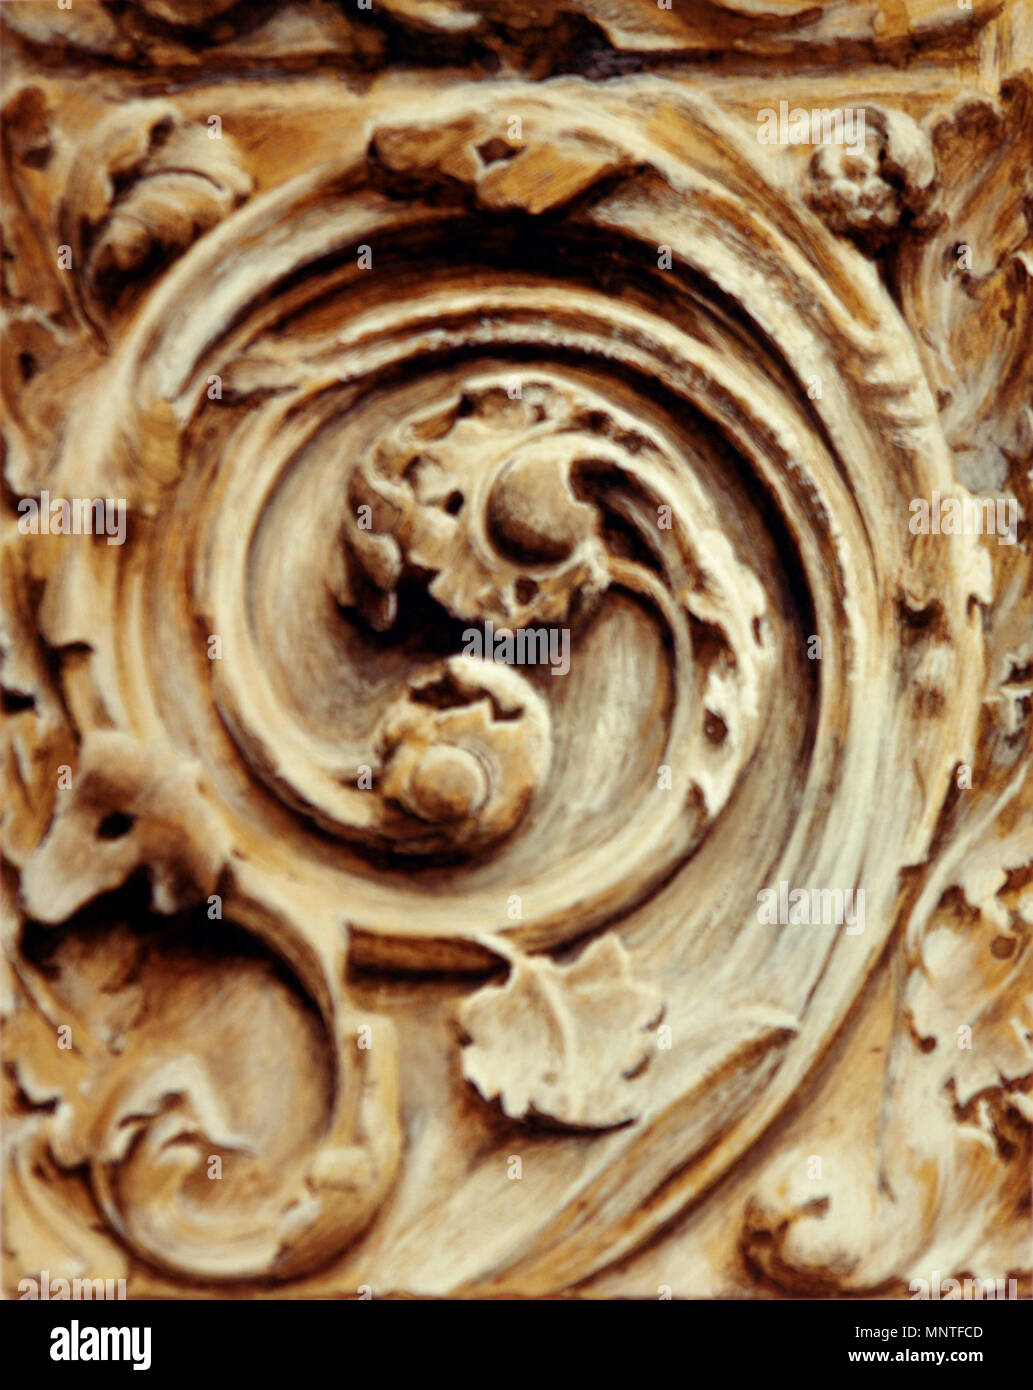 . English: John Ruskin (1819-1900): Spiral relief from the north transept door, Rouen Cathedral, 1882, pencil, watercolour and bodycolour, 21.3 x 17.2 cm. 1882.   John Ruskin (1819–1900)   Alternative names Ruskin  Description British author, poet, artist and art critic  Date of birth/death 8 February 1819 20 January 1900  Location of birth/death London English: Brantwood, Lake District  Work location England, Venice, Switzerland, France  Authority control  : Q179126 VIAF:73859585 ISNI:0000 0001 2139 3446 ULAN:500006262 LCCN:n79006950 NLA:36583544 WorldCat 1135 Spiral relief from the - Stock Image